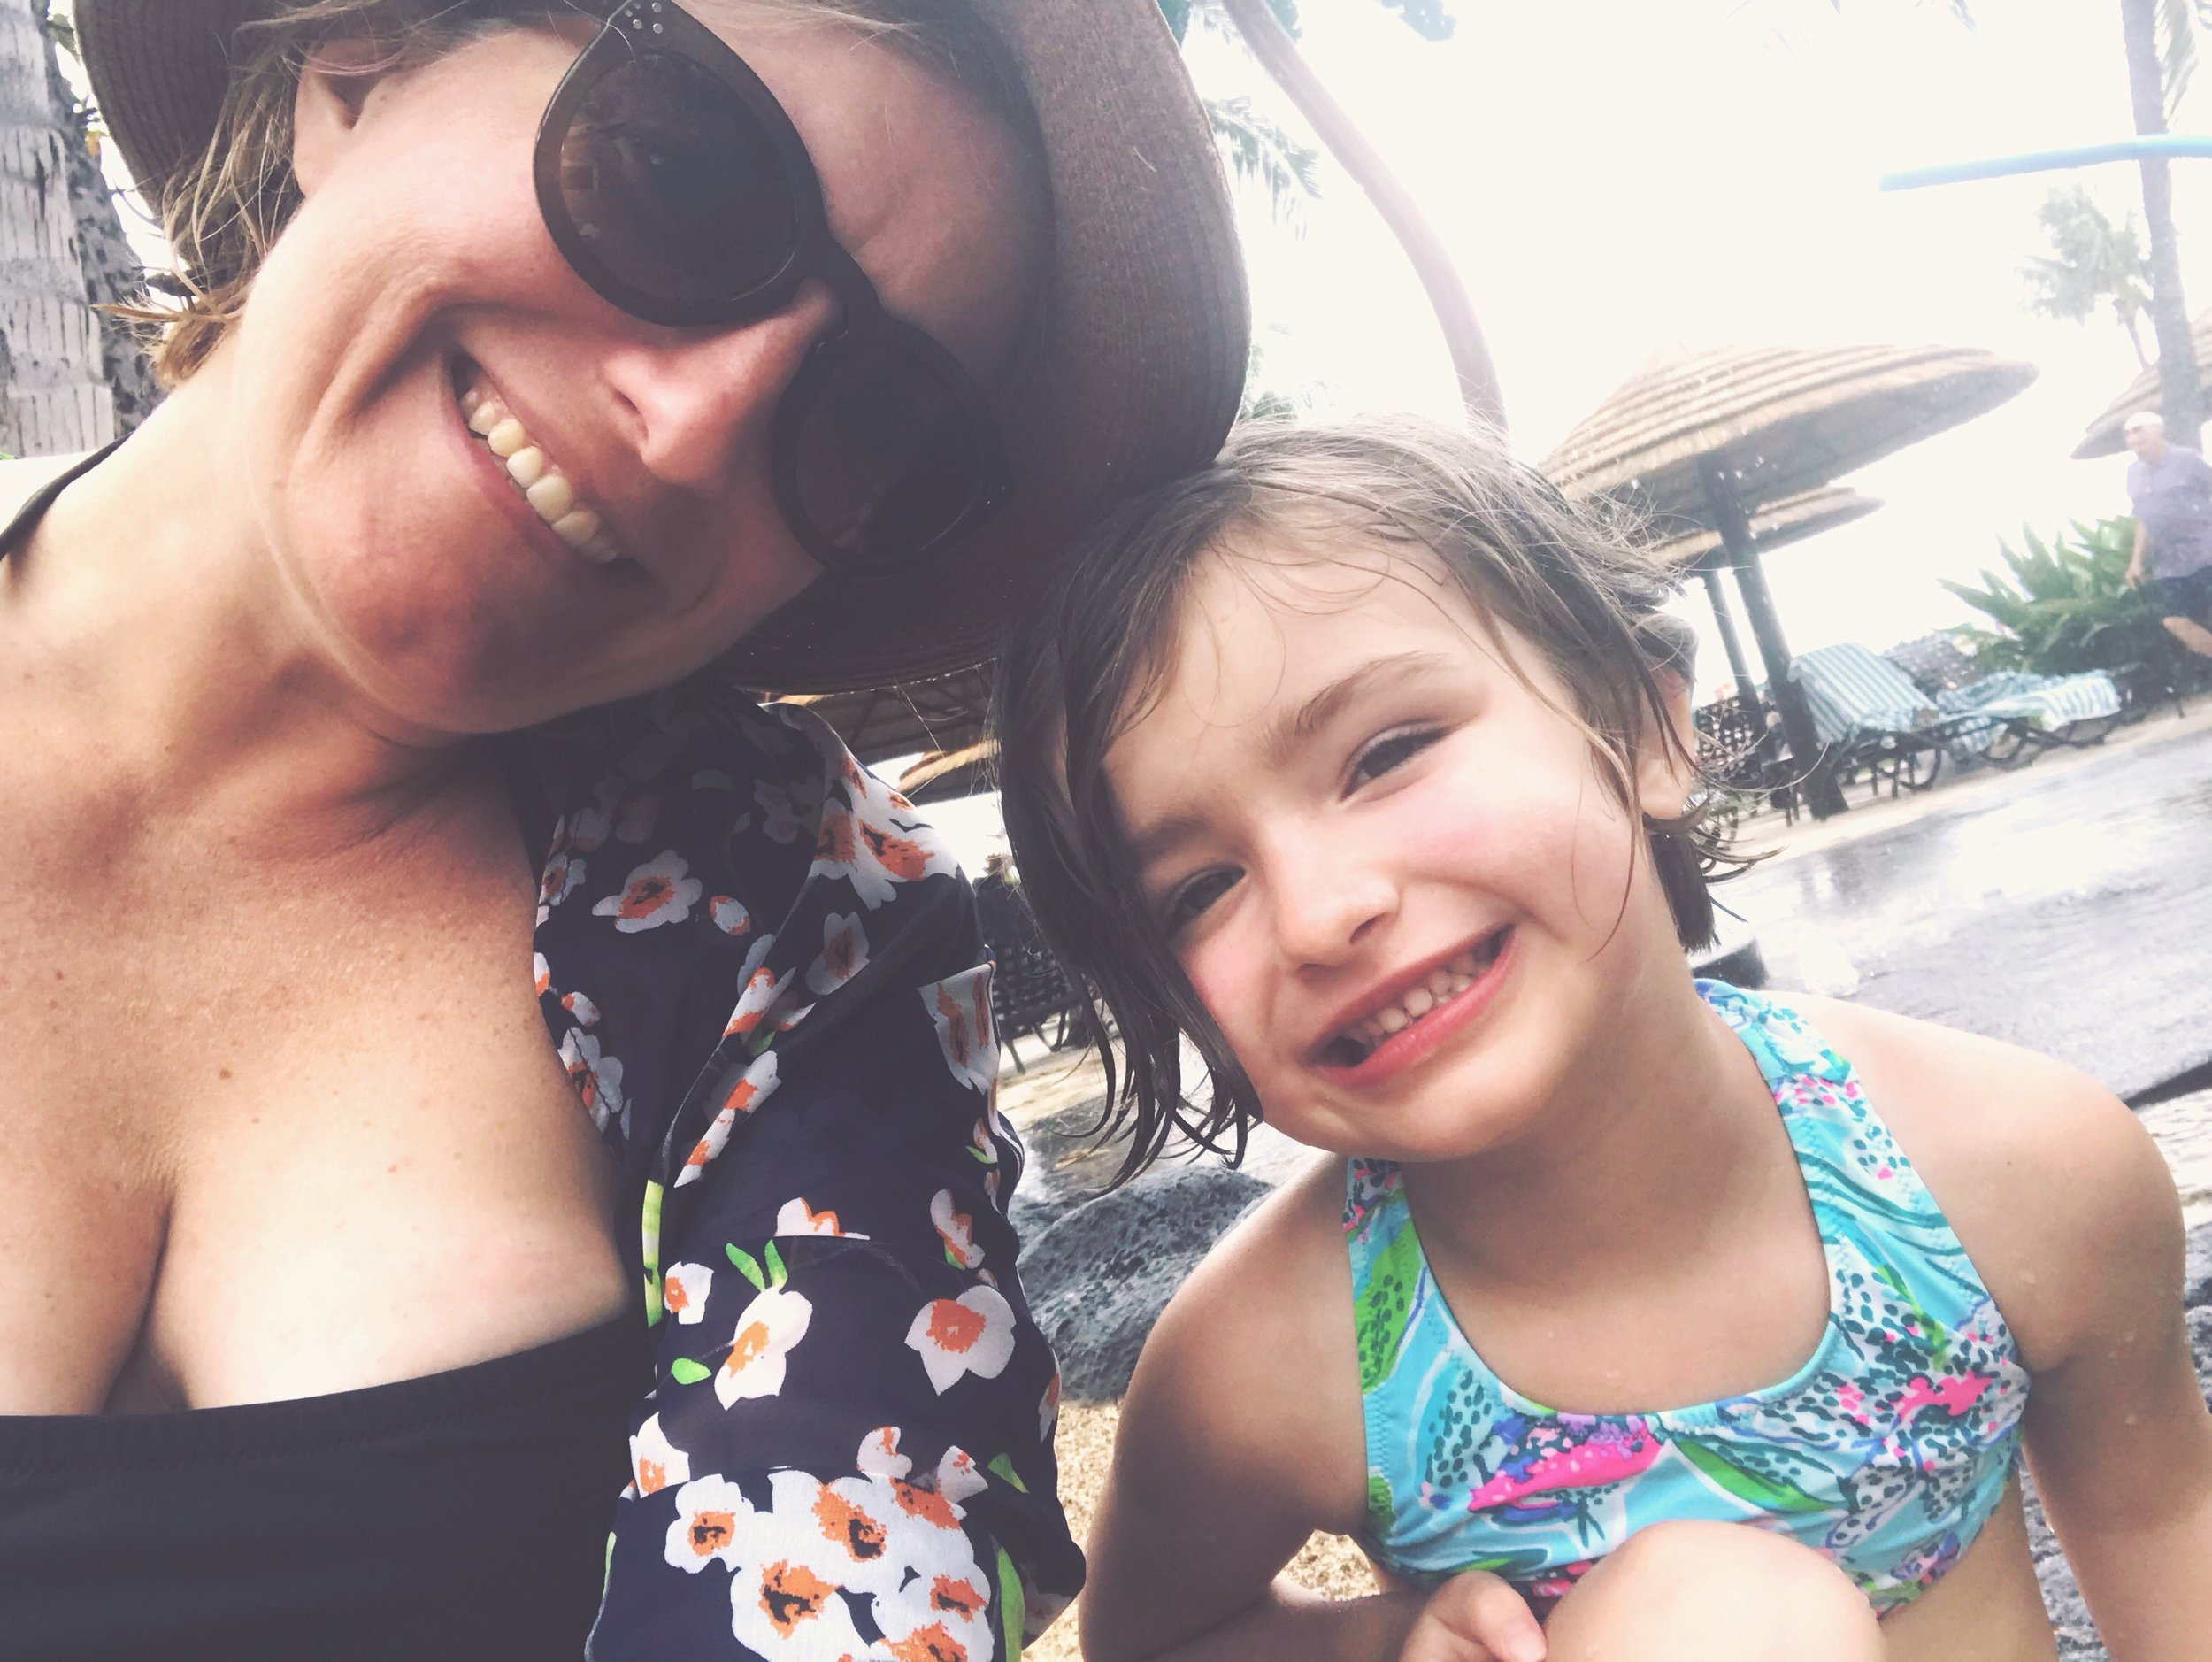 Little Miss and I, sitting by the pool.